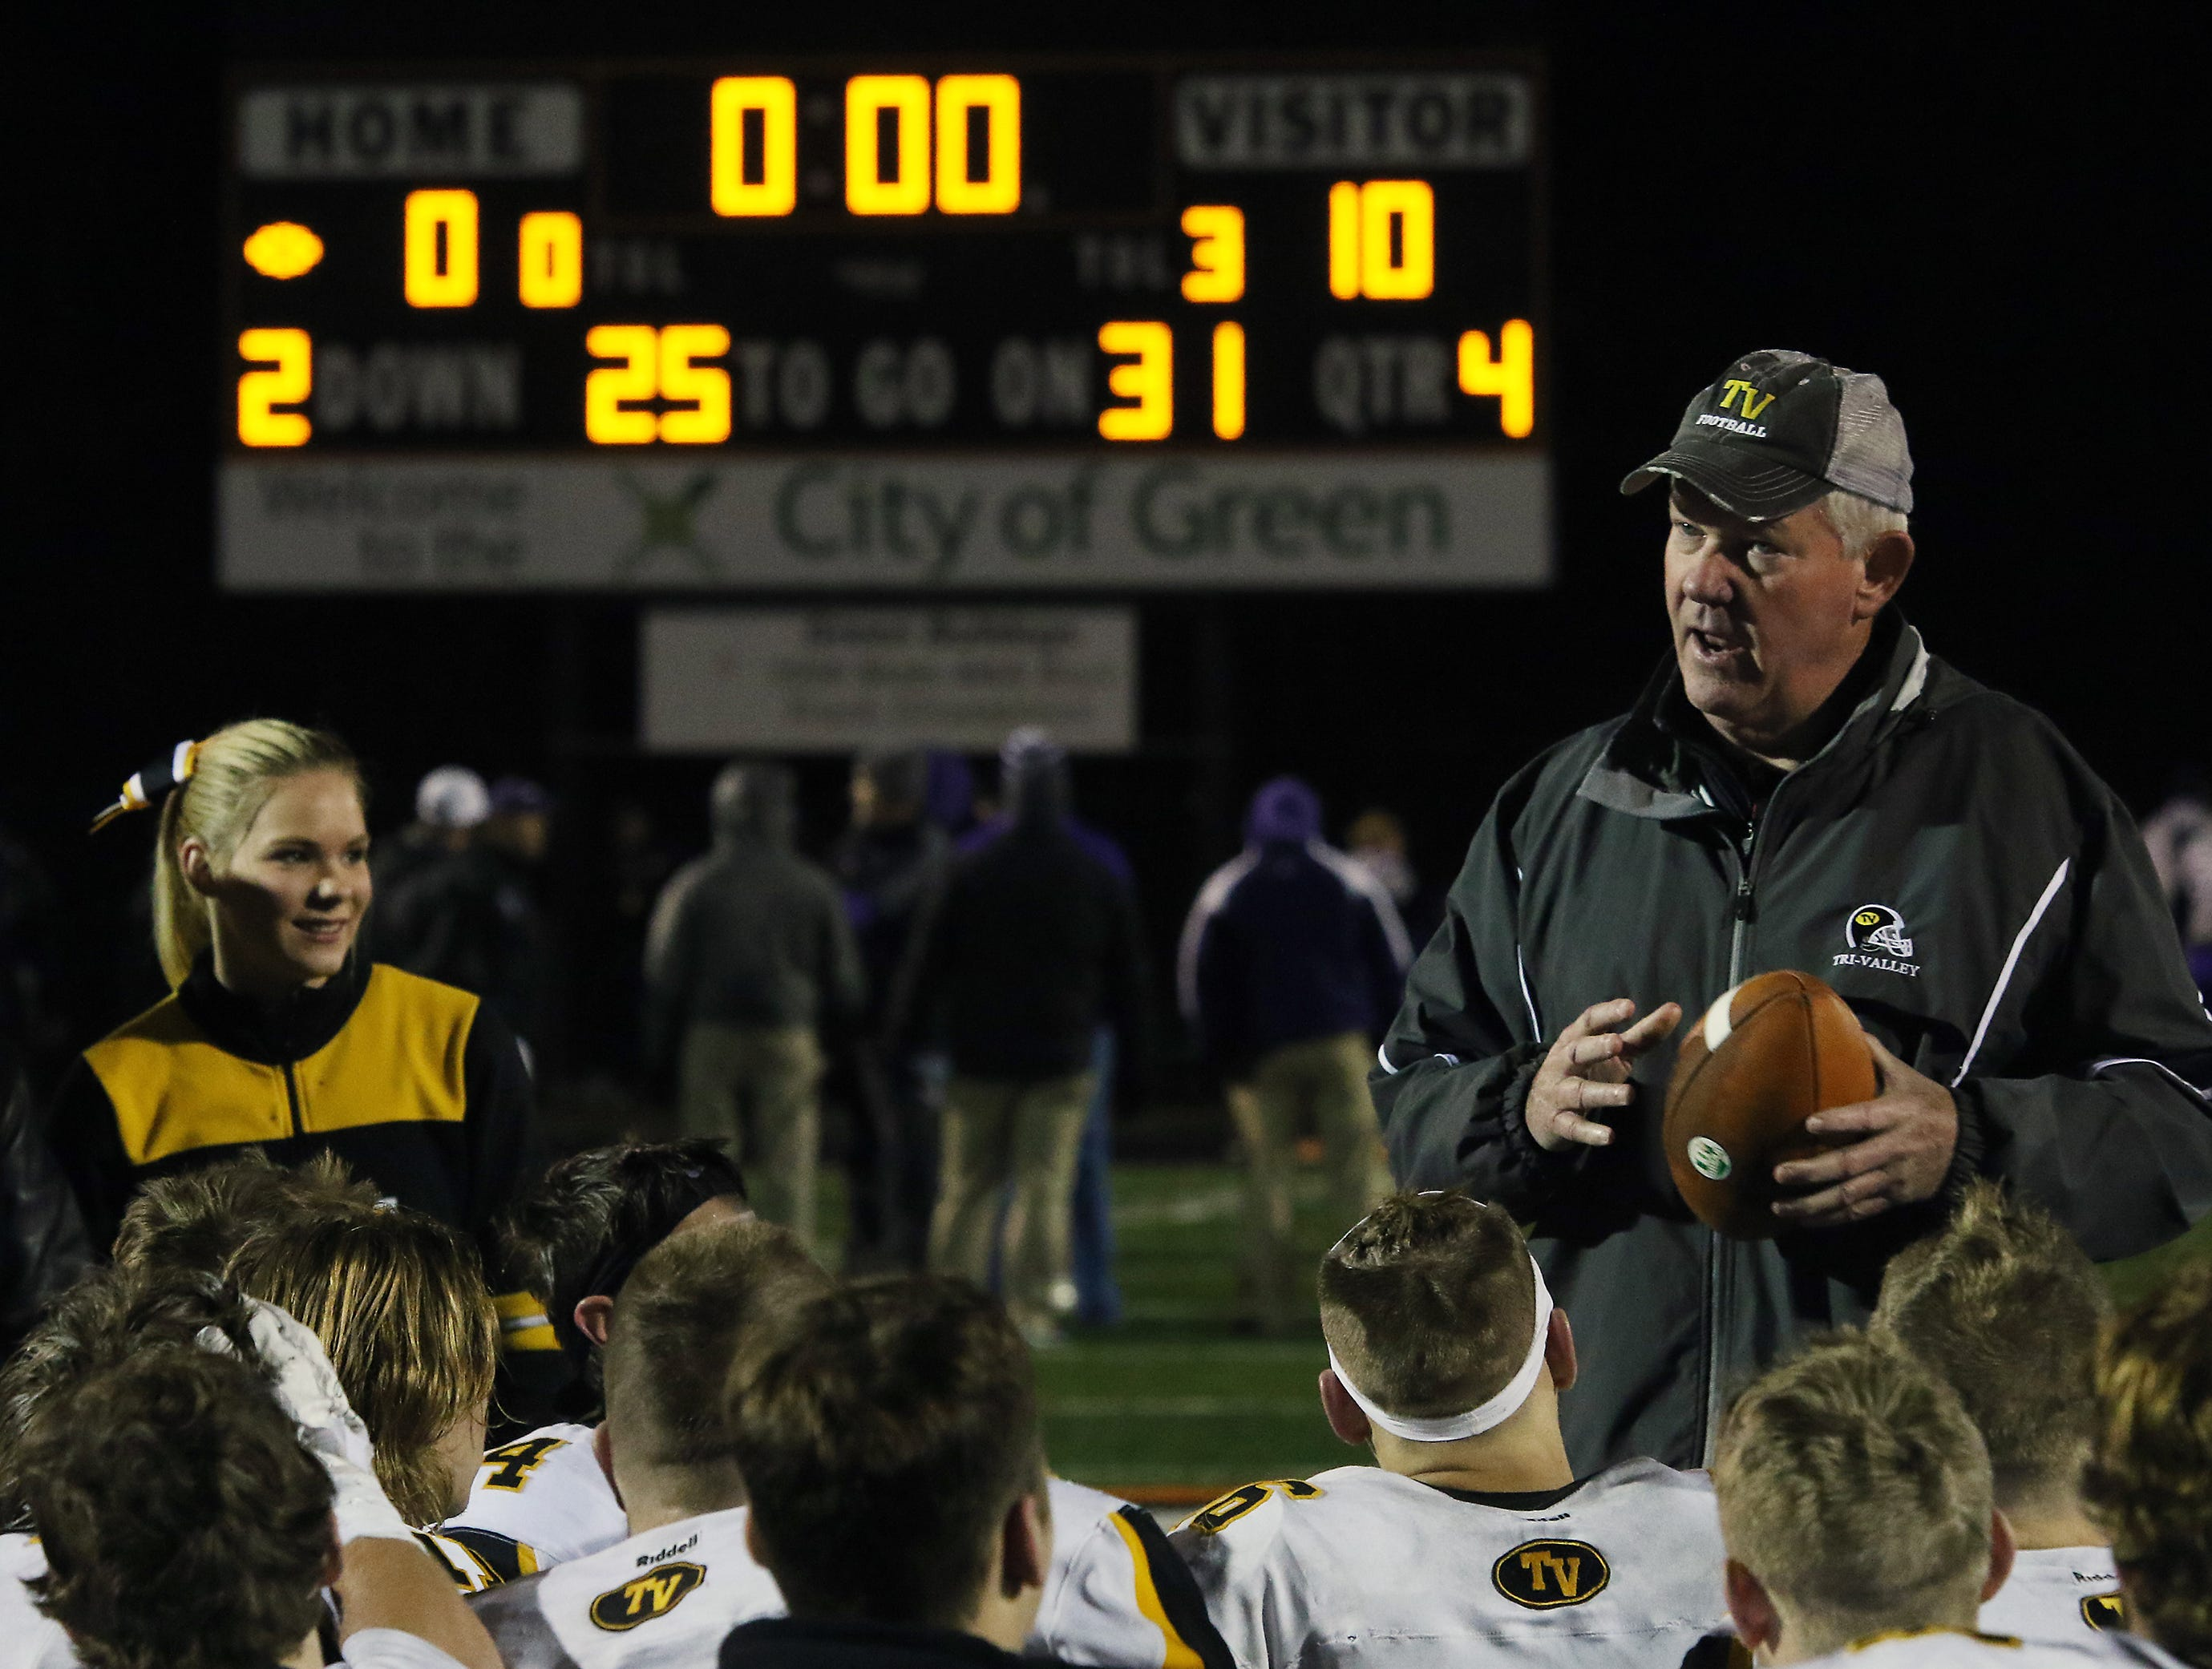 Tri-Valley head coach Kevin Fell talks to his team after defeating Barberton.